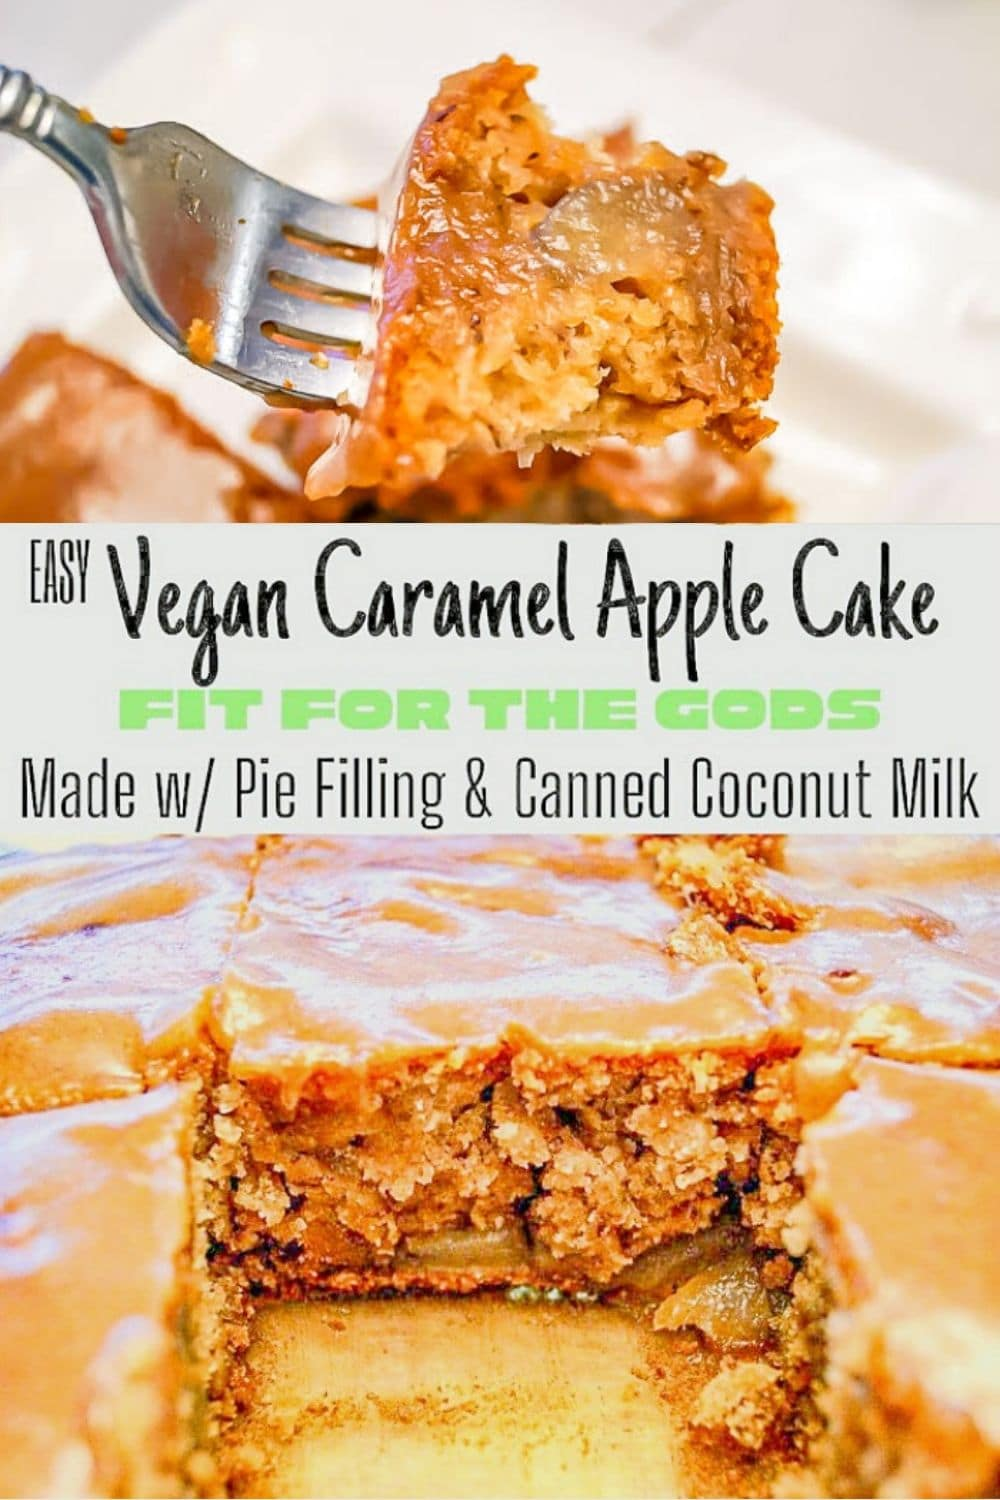 Vegan Caramel Apple Cake for Pinterest